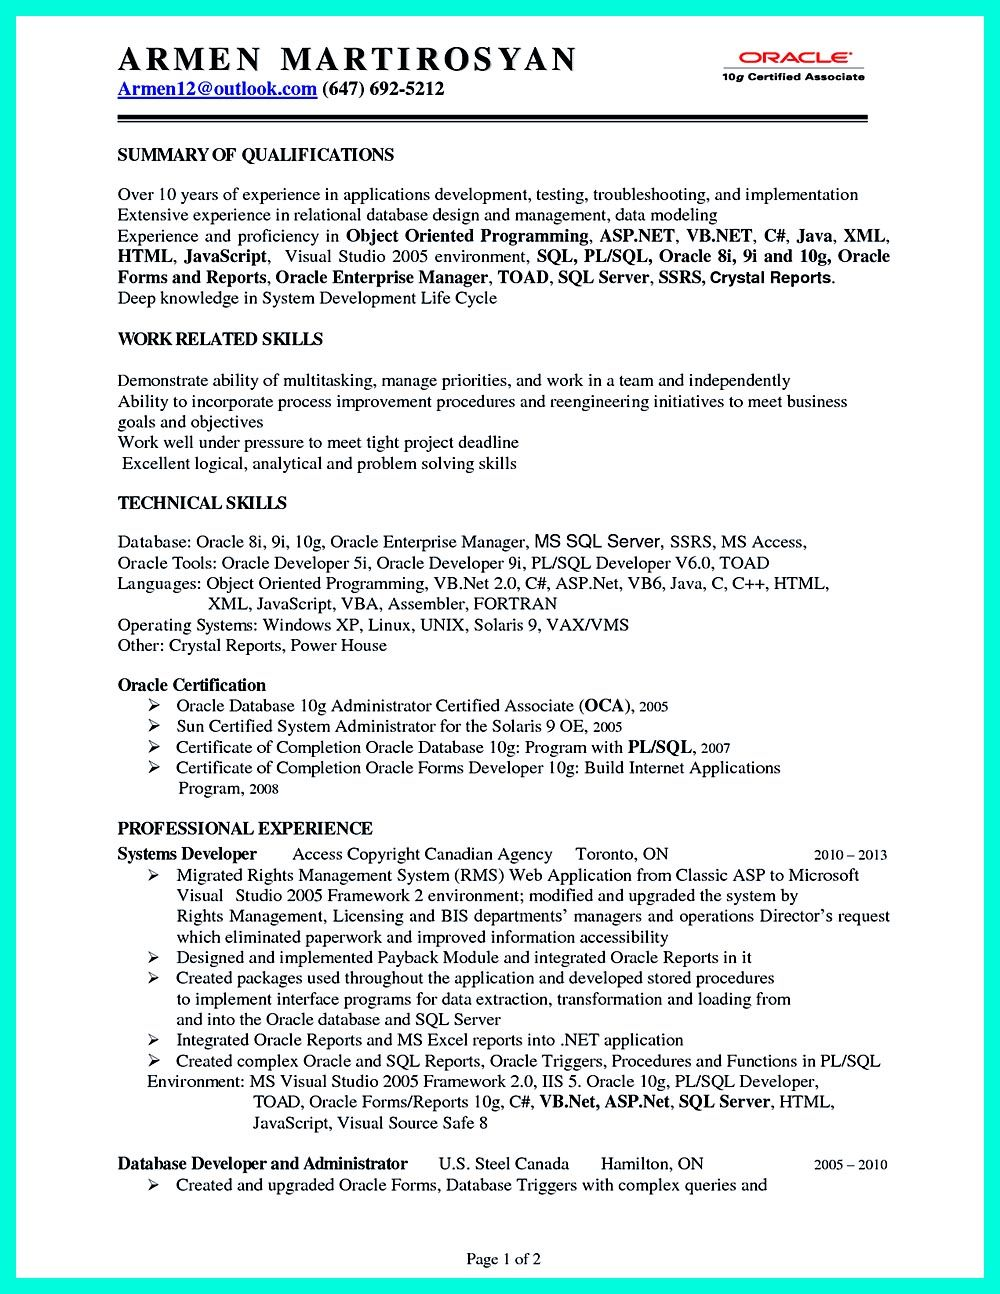 Database developer resume here can be used by